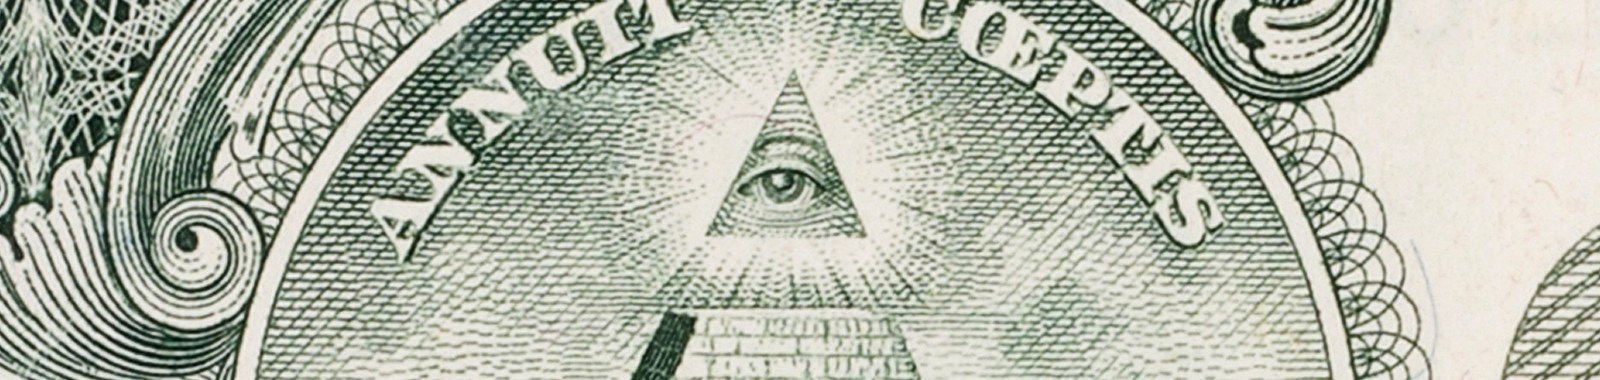 Eye of Providence - close up of the one dollar bill banknote.